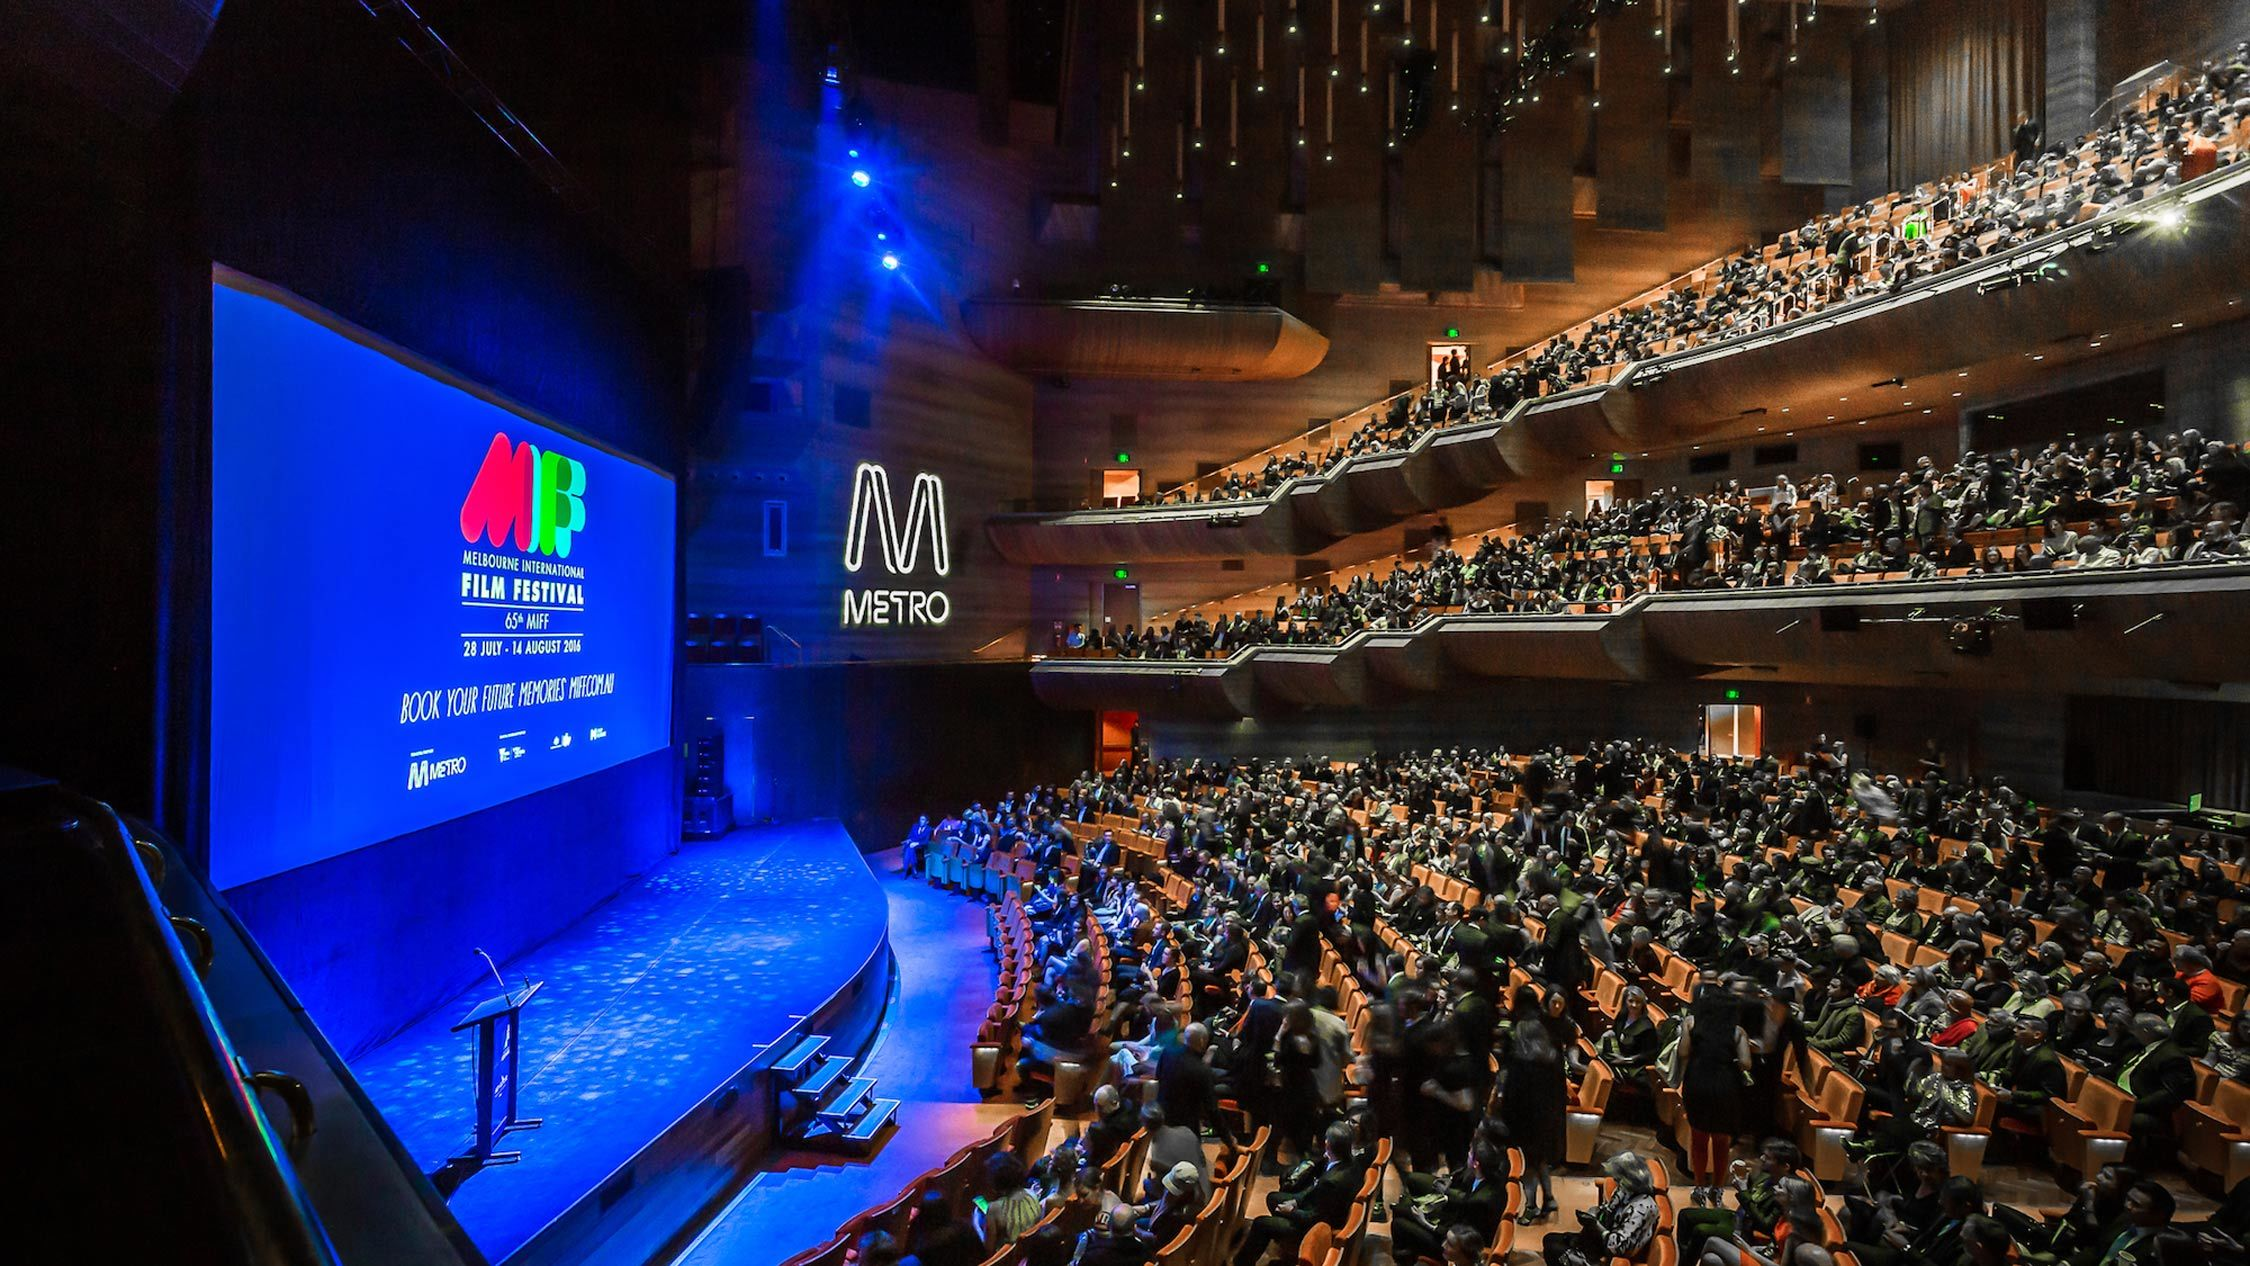 MIFF will go ahead as an online film festival